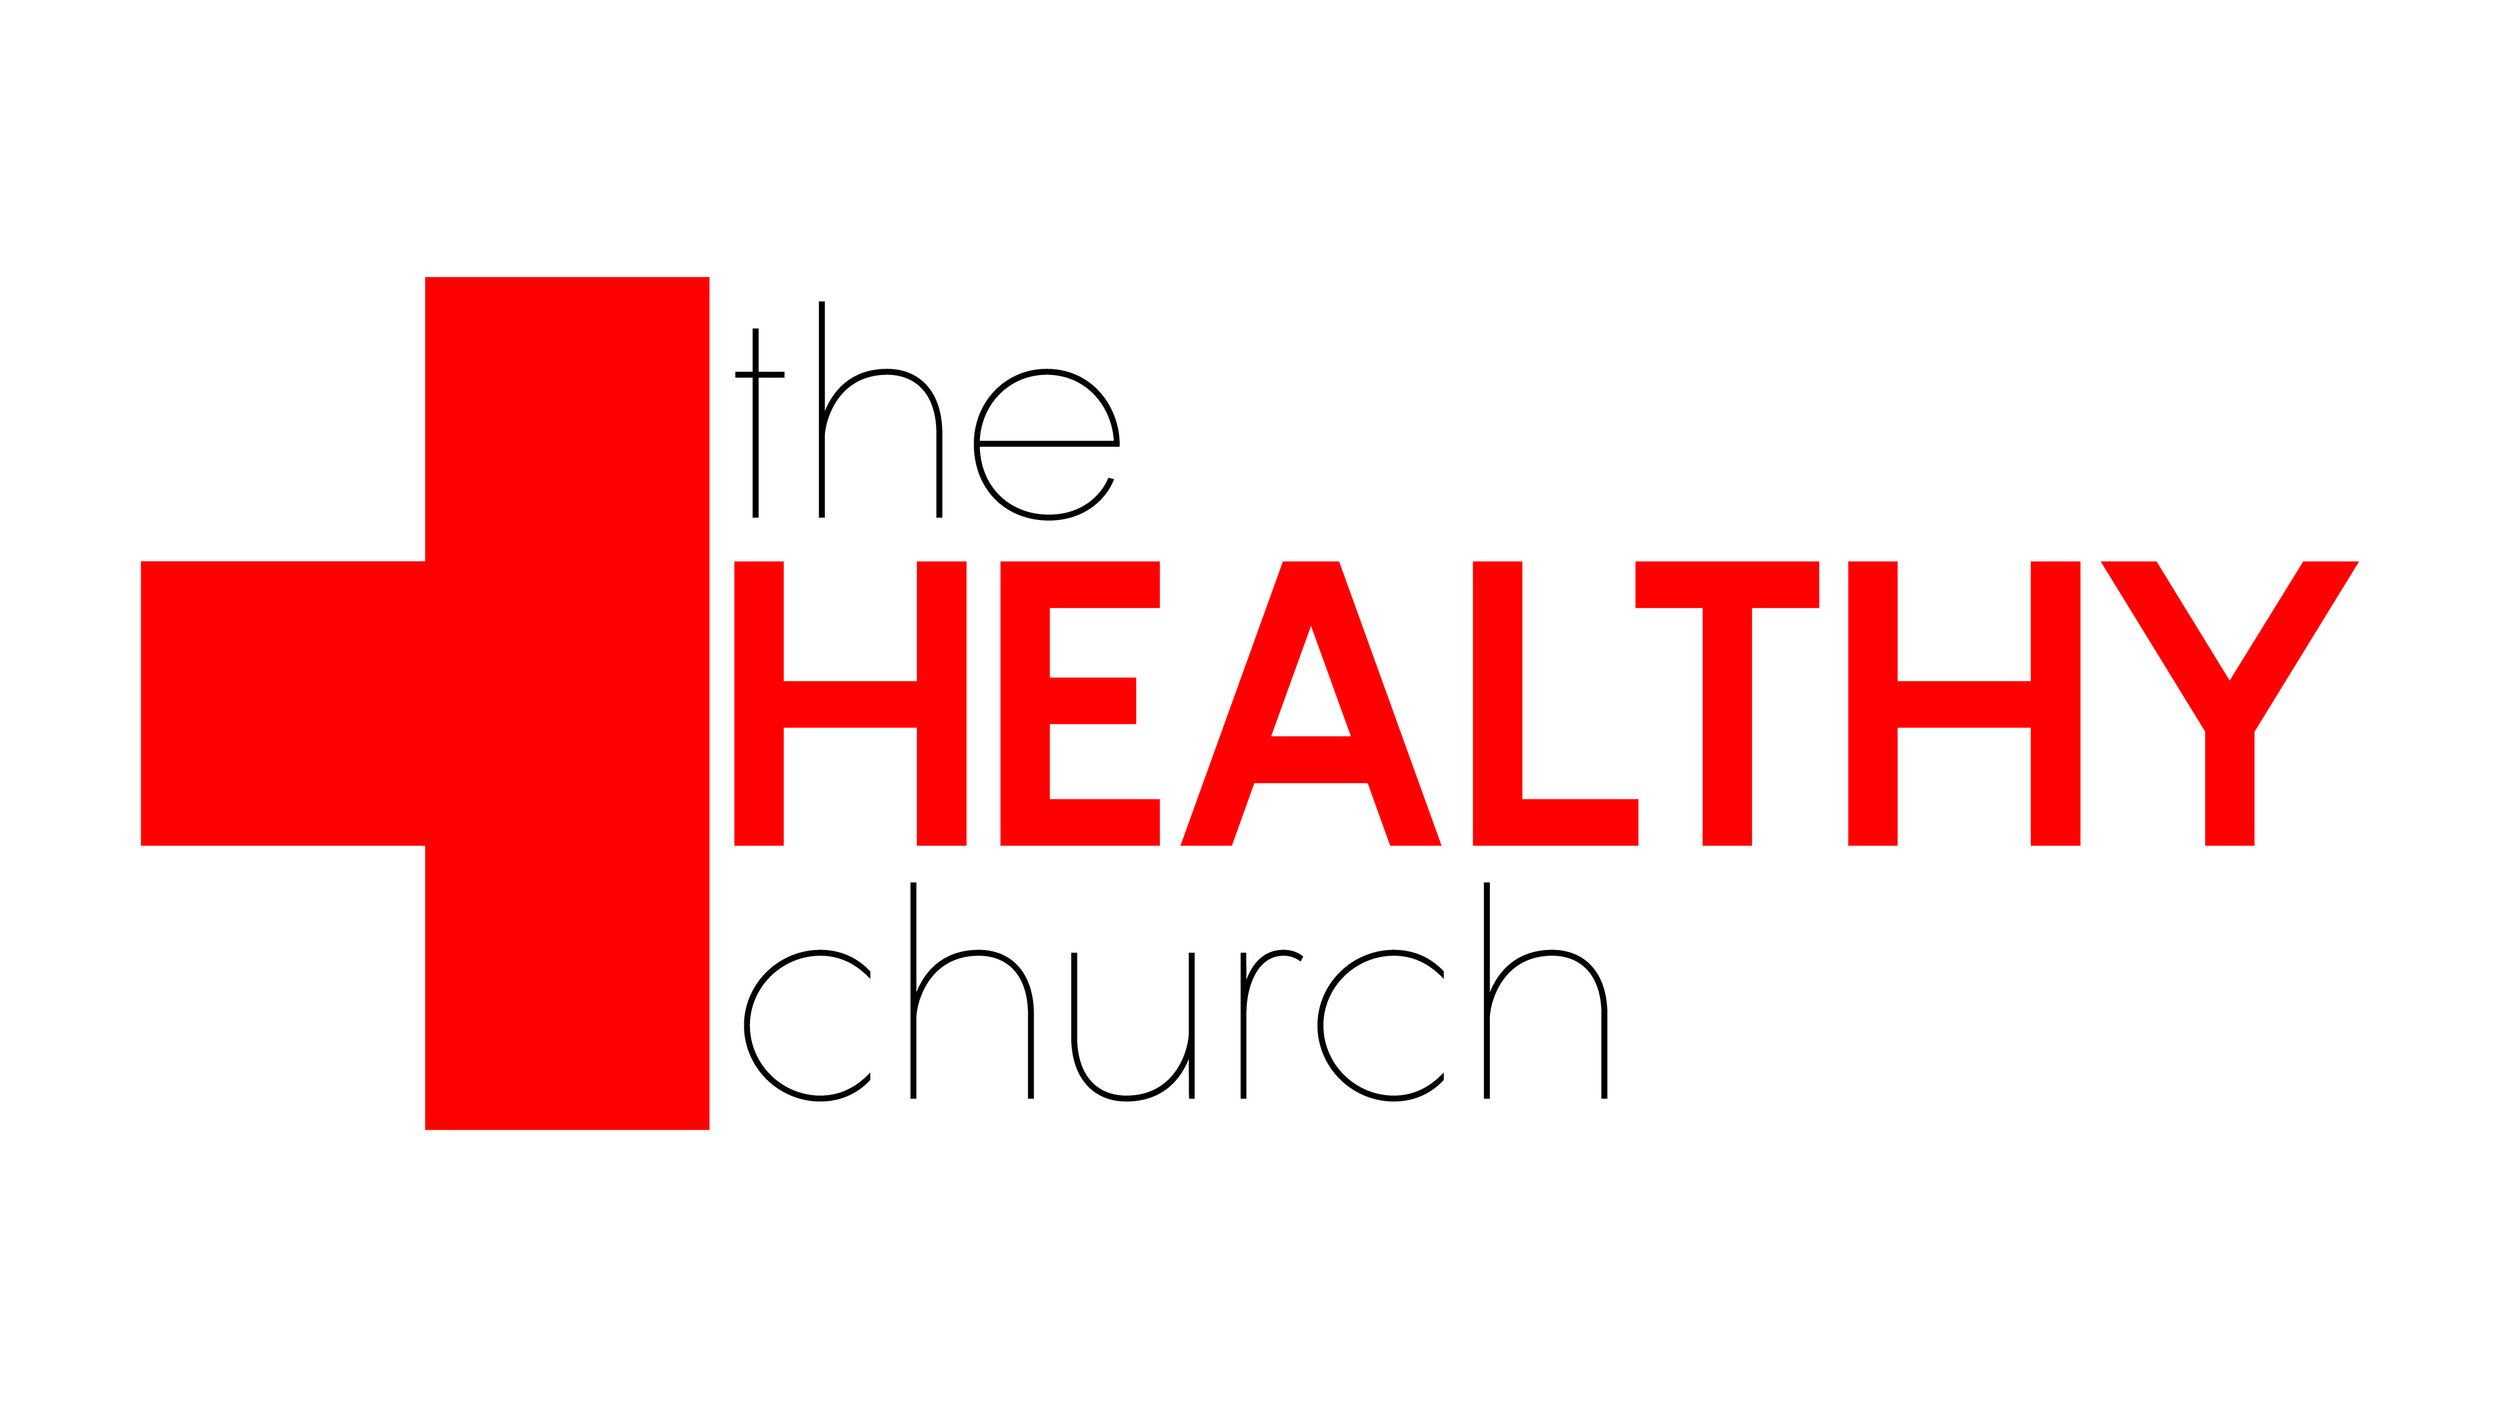 Healthy Church Logo-06.jpg